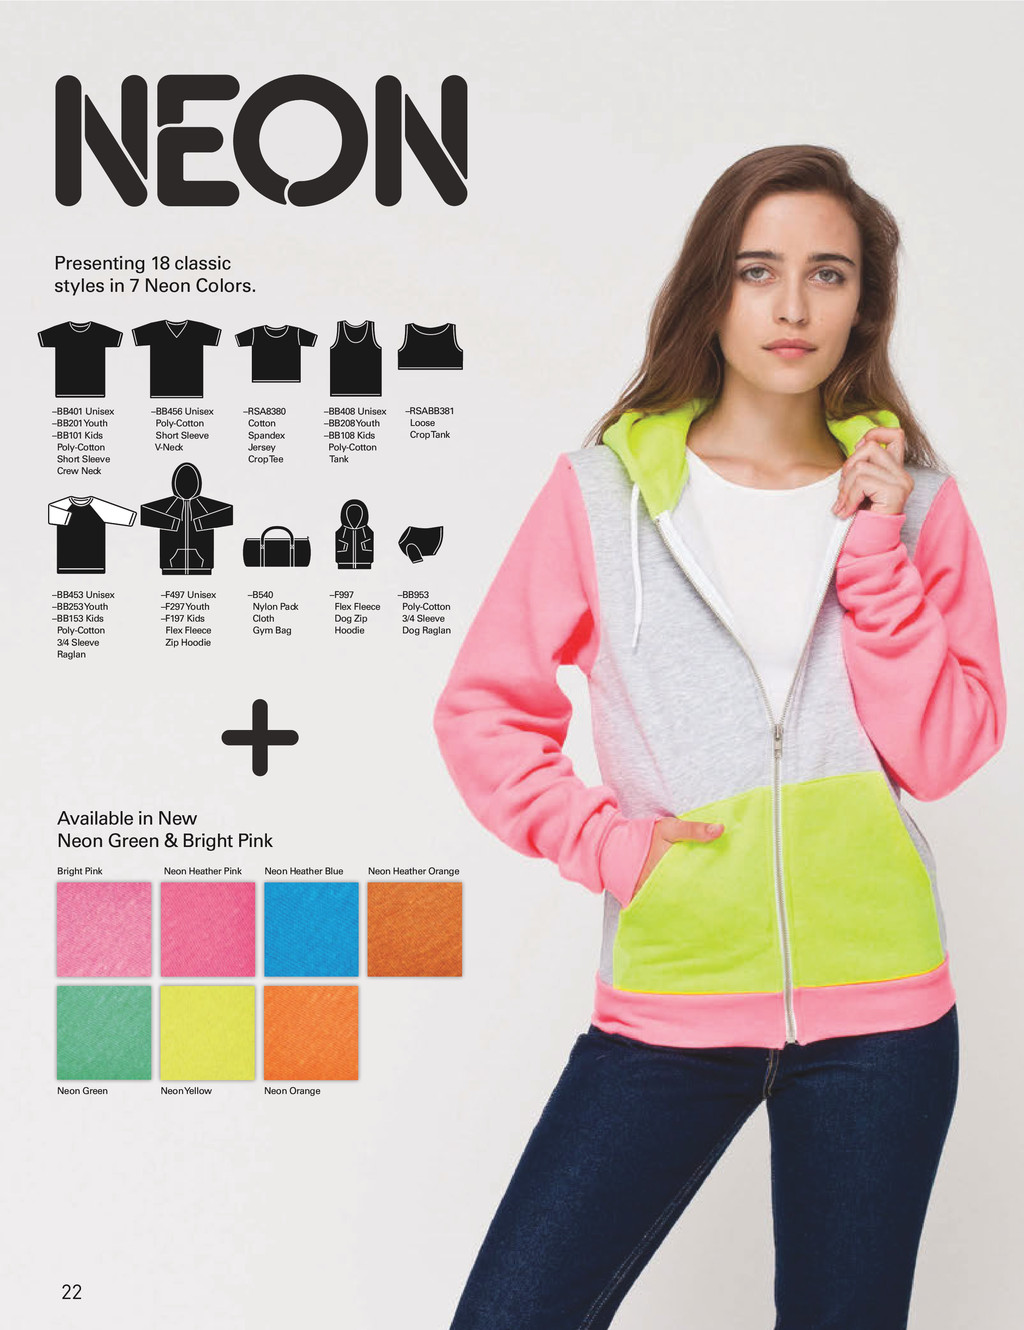 Presenting 18 classic styles in 7 Neon Colors. ...